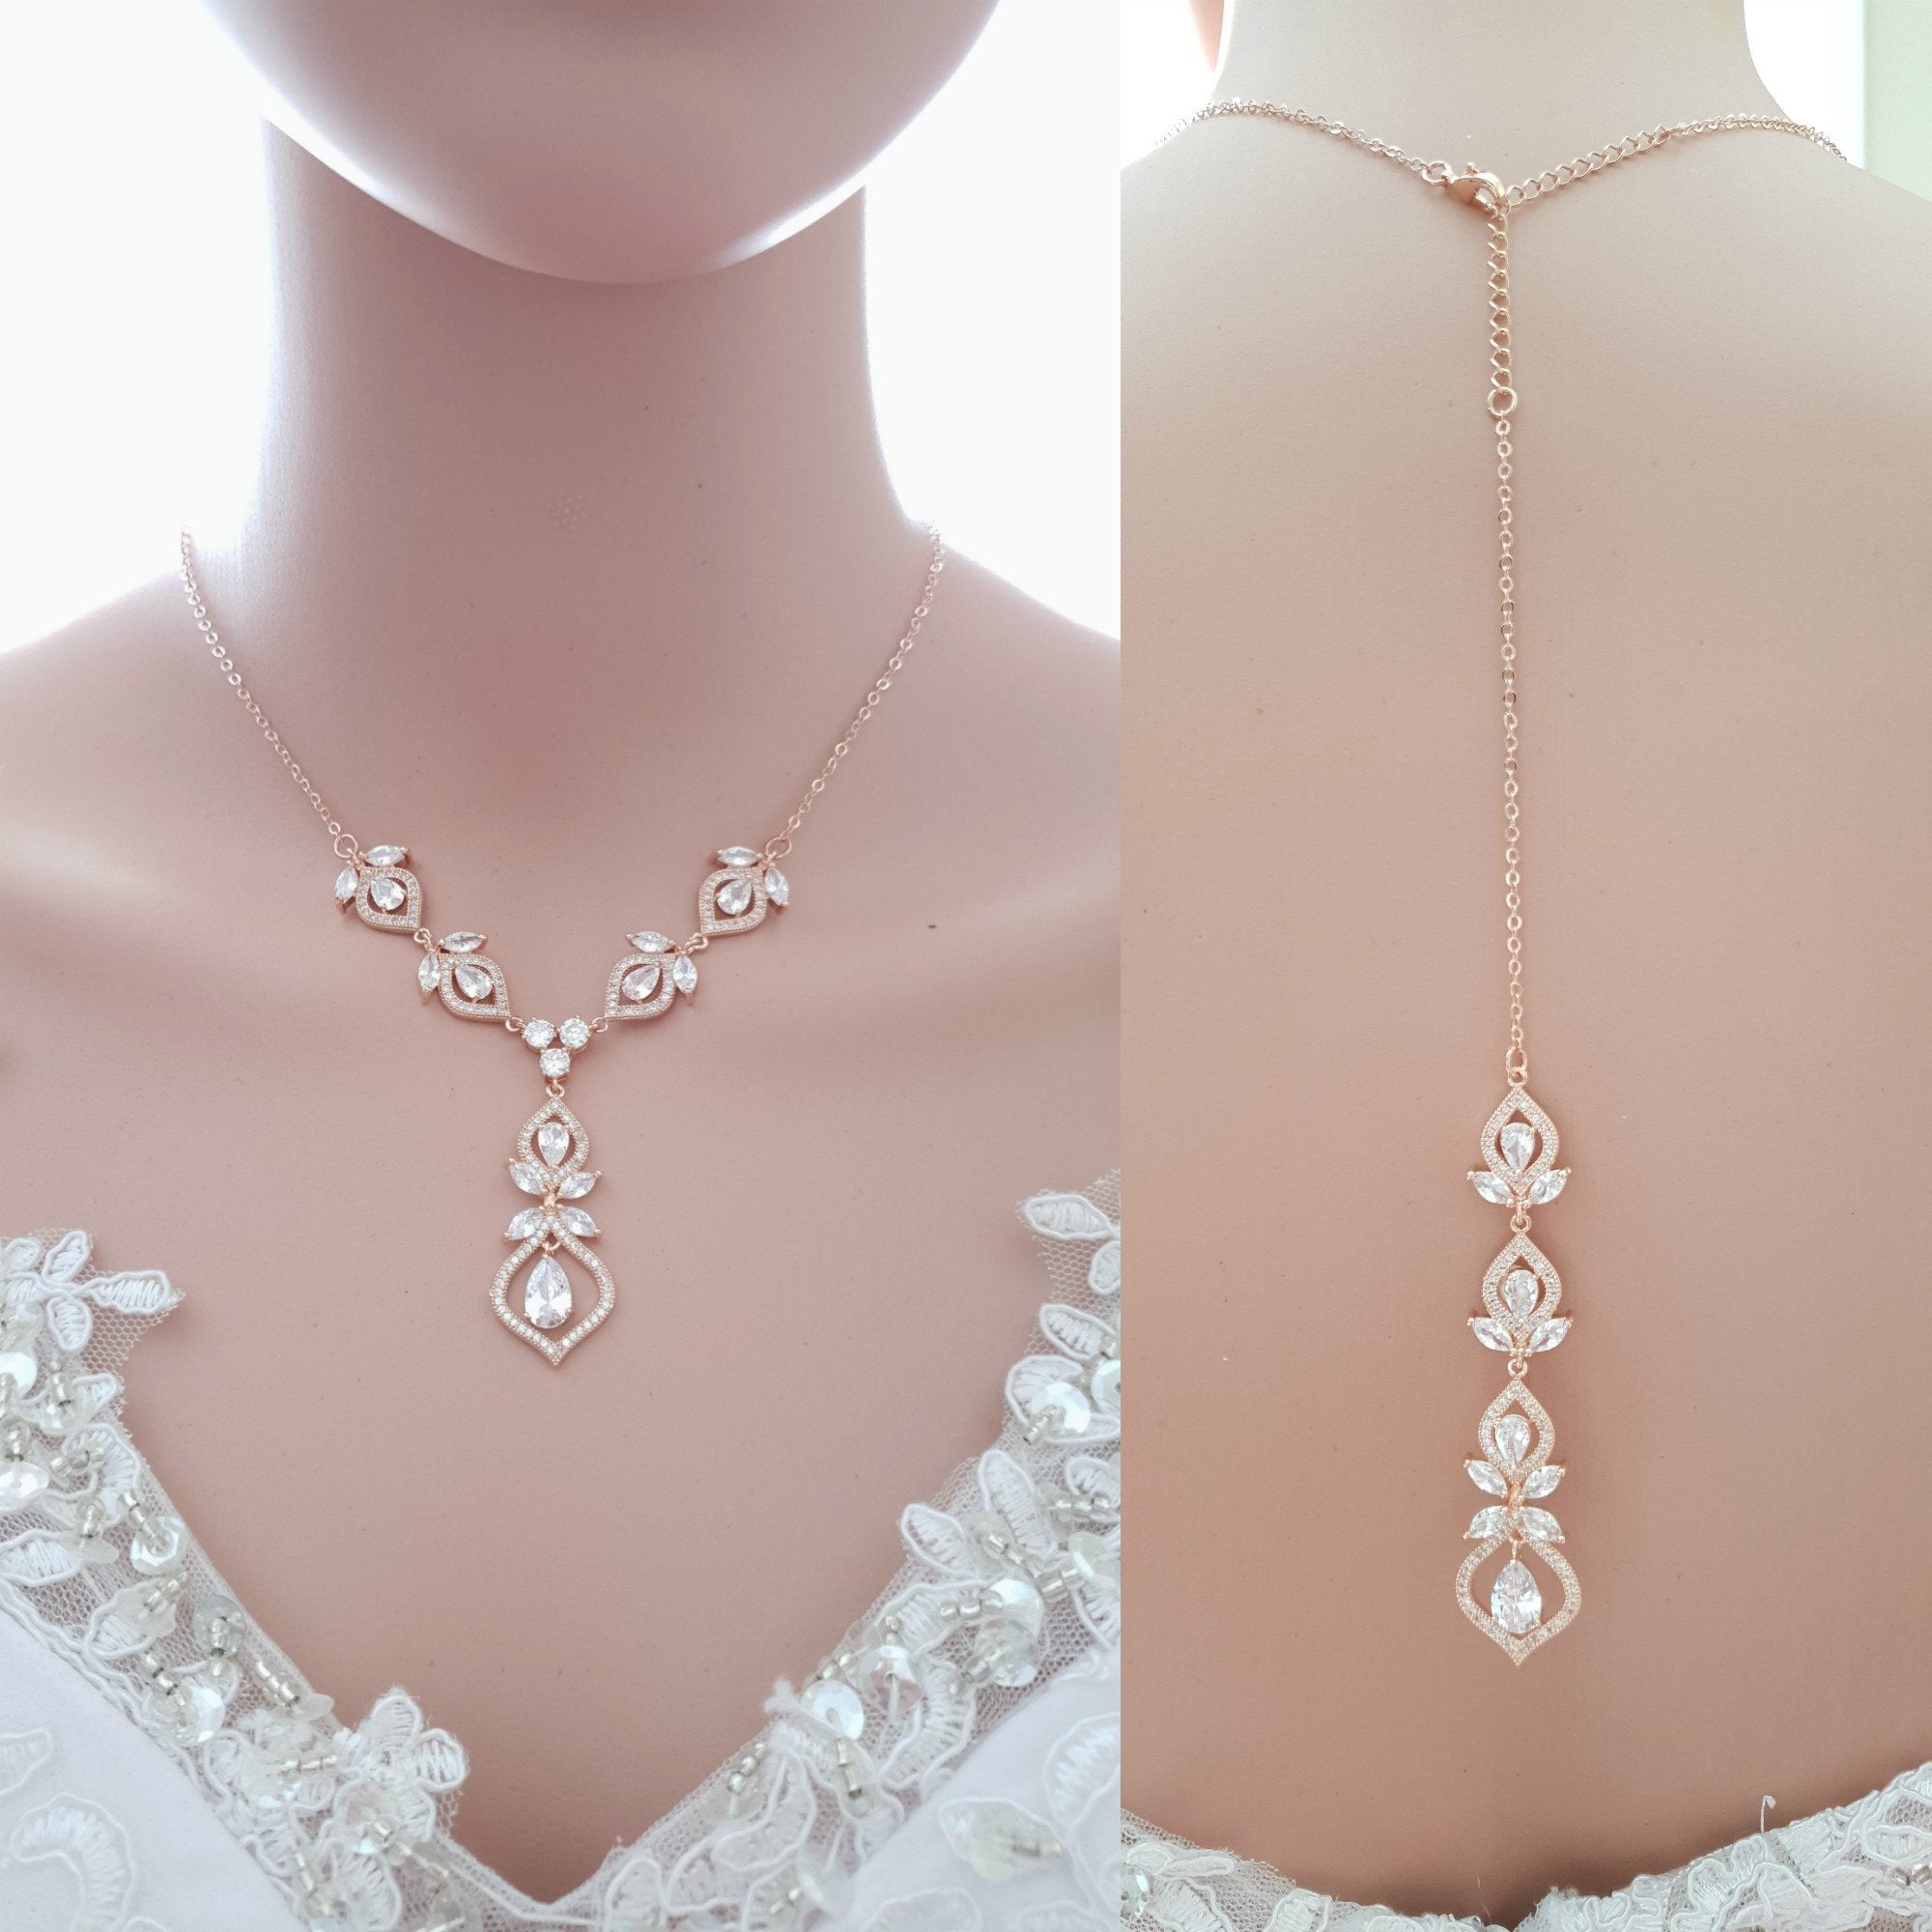 Back Necklace Rose Gold Bridal Necklace Crystal Wedding Necklace Gold Back Drop Necklace Backdrop Necklace for Brides Bridal Jewelry Meghan - PoetryDesigns